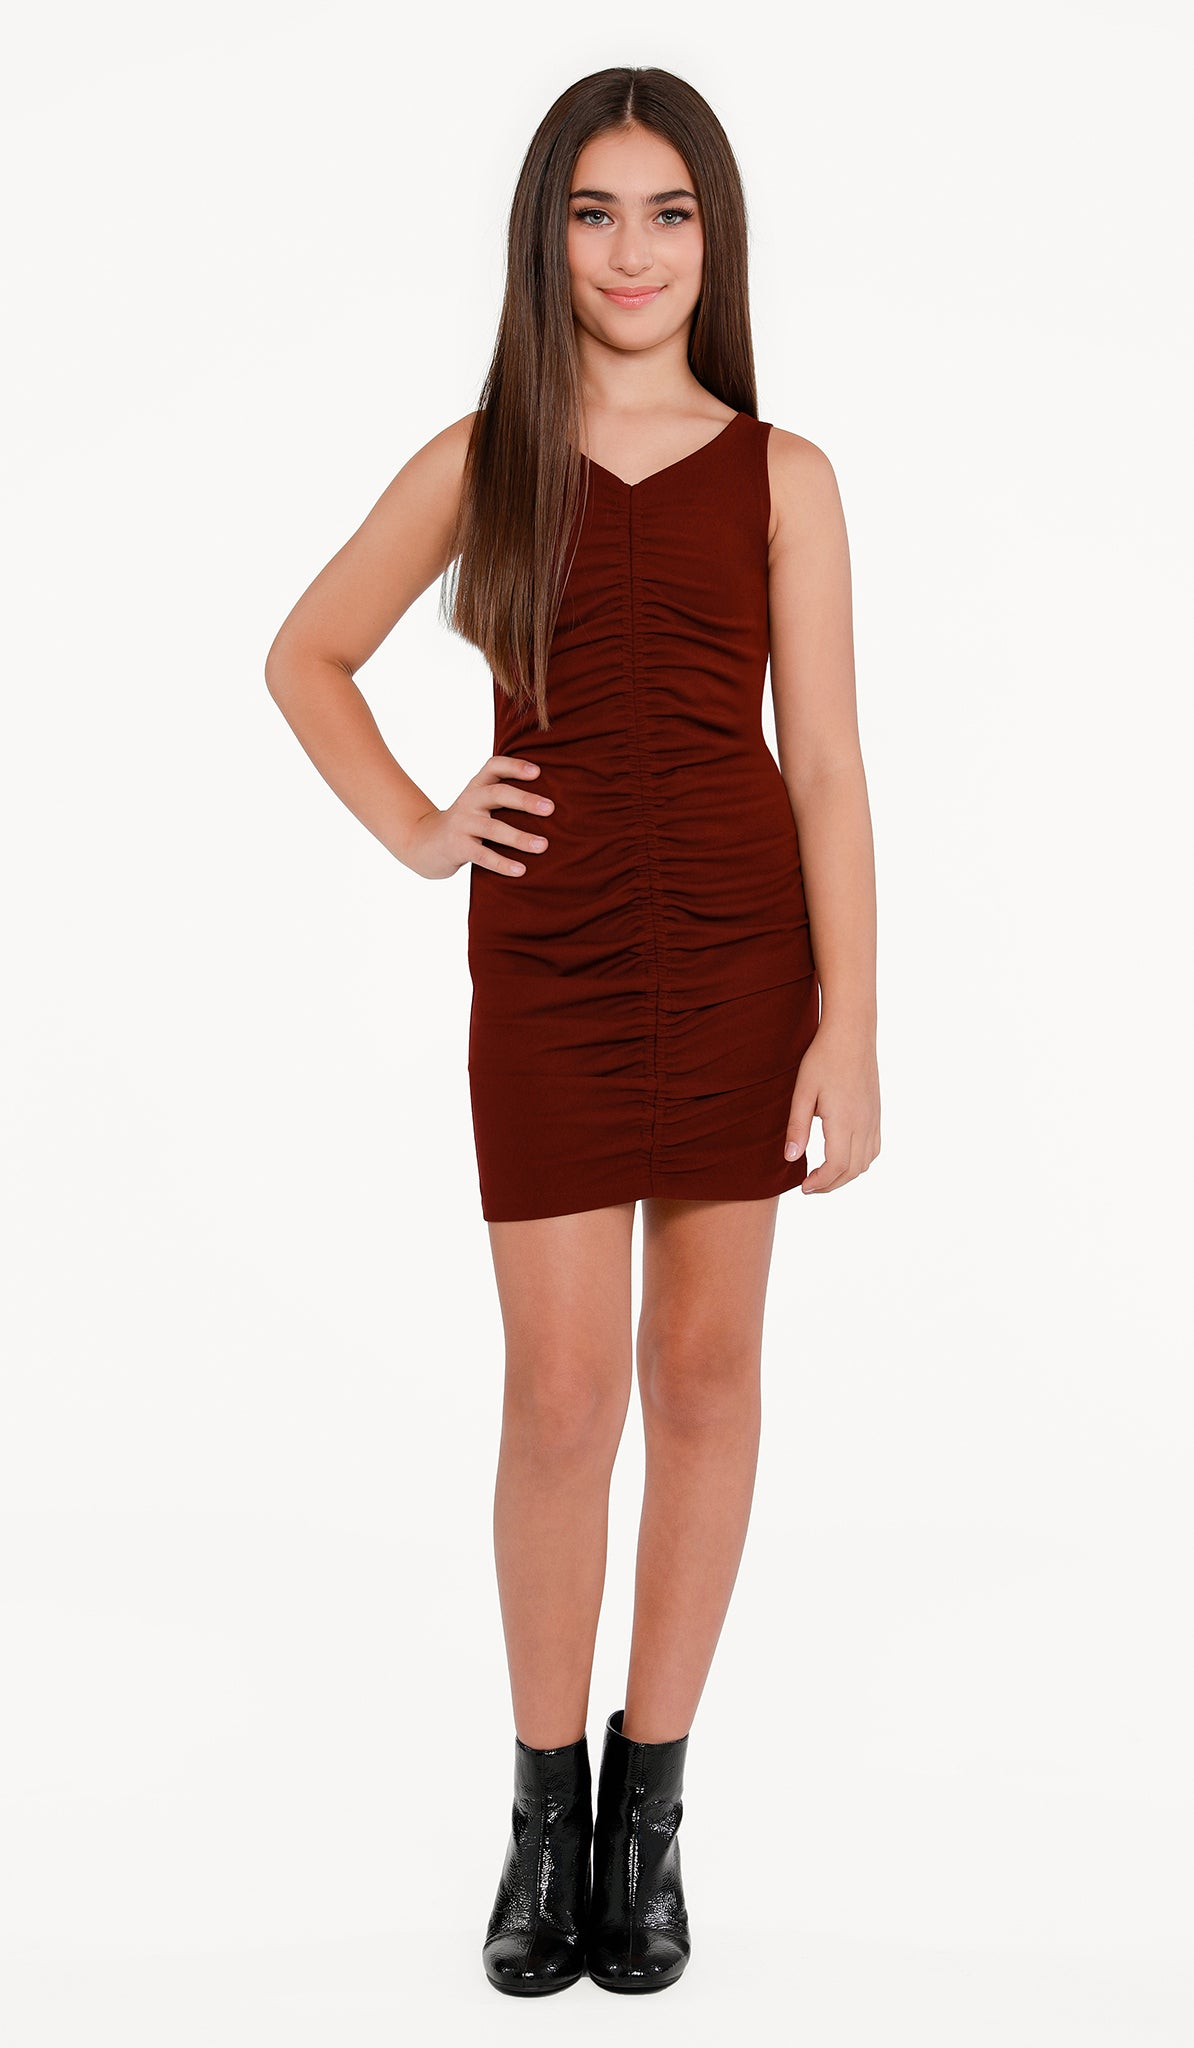 THE DEB DRESS - Sallymiller.com - [variant title] - | Event & Party Dresses for Tween Girls & Juniors | Weddings Dresses, Bat Mitzvah Dresses, Sweet Sixteen Dresses, Graduation Dresses, Birthday Party Dresses, Bar Mitzvah Dresses, Cotillion Dresses